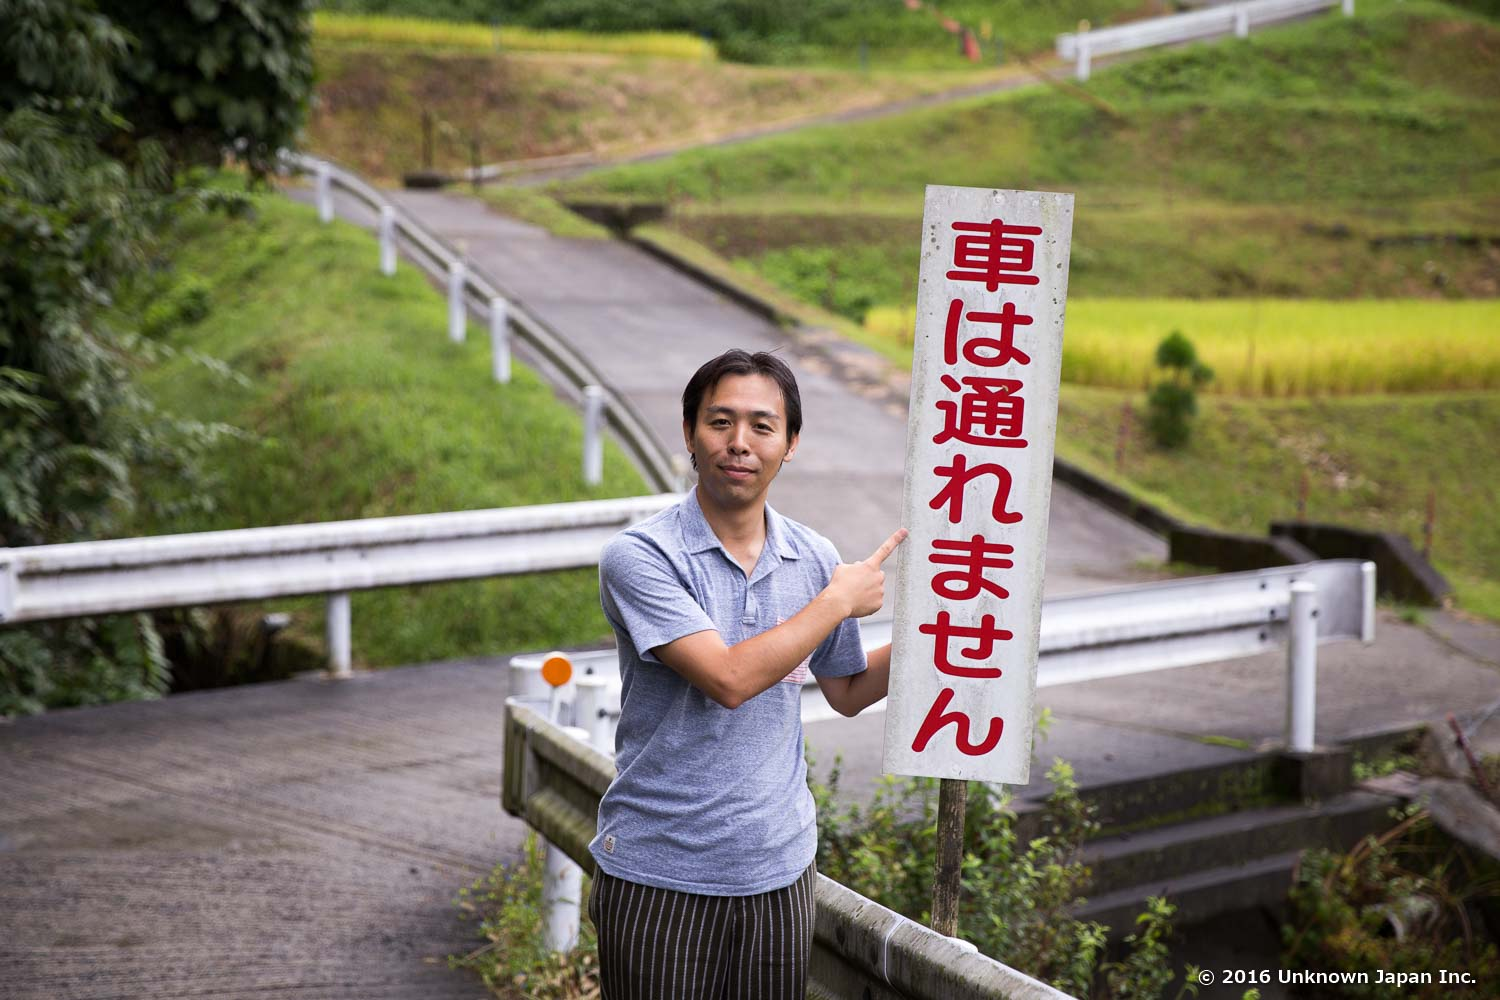 This signboard is the sign for  Teraono Onsen !